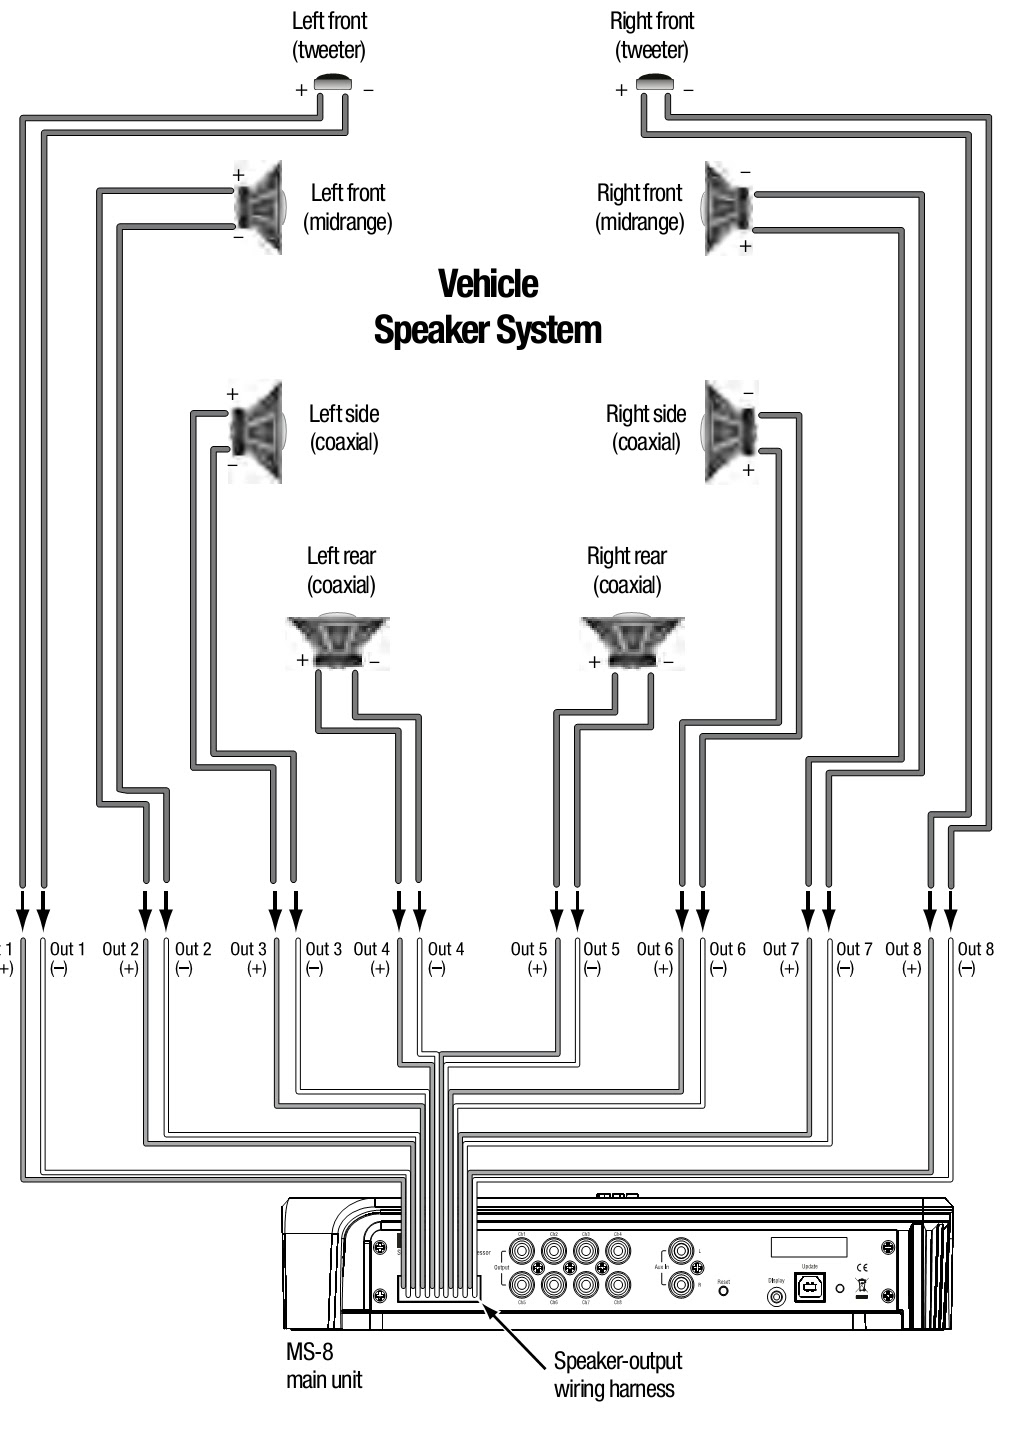 hight resolution of 4ch amp wiring diagram wiring diagram general alpine 4 channel amp wiring diagram 4ch amp wiring diagram